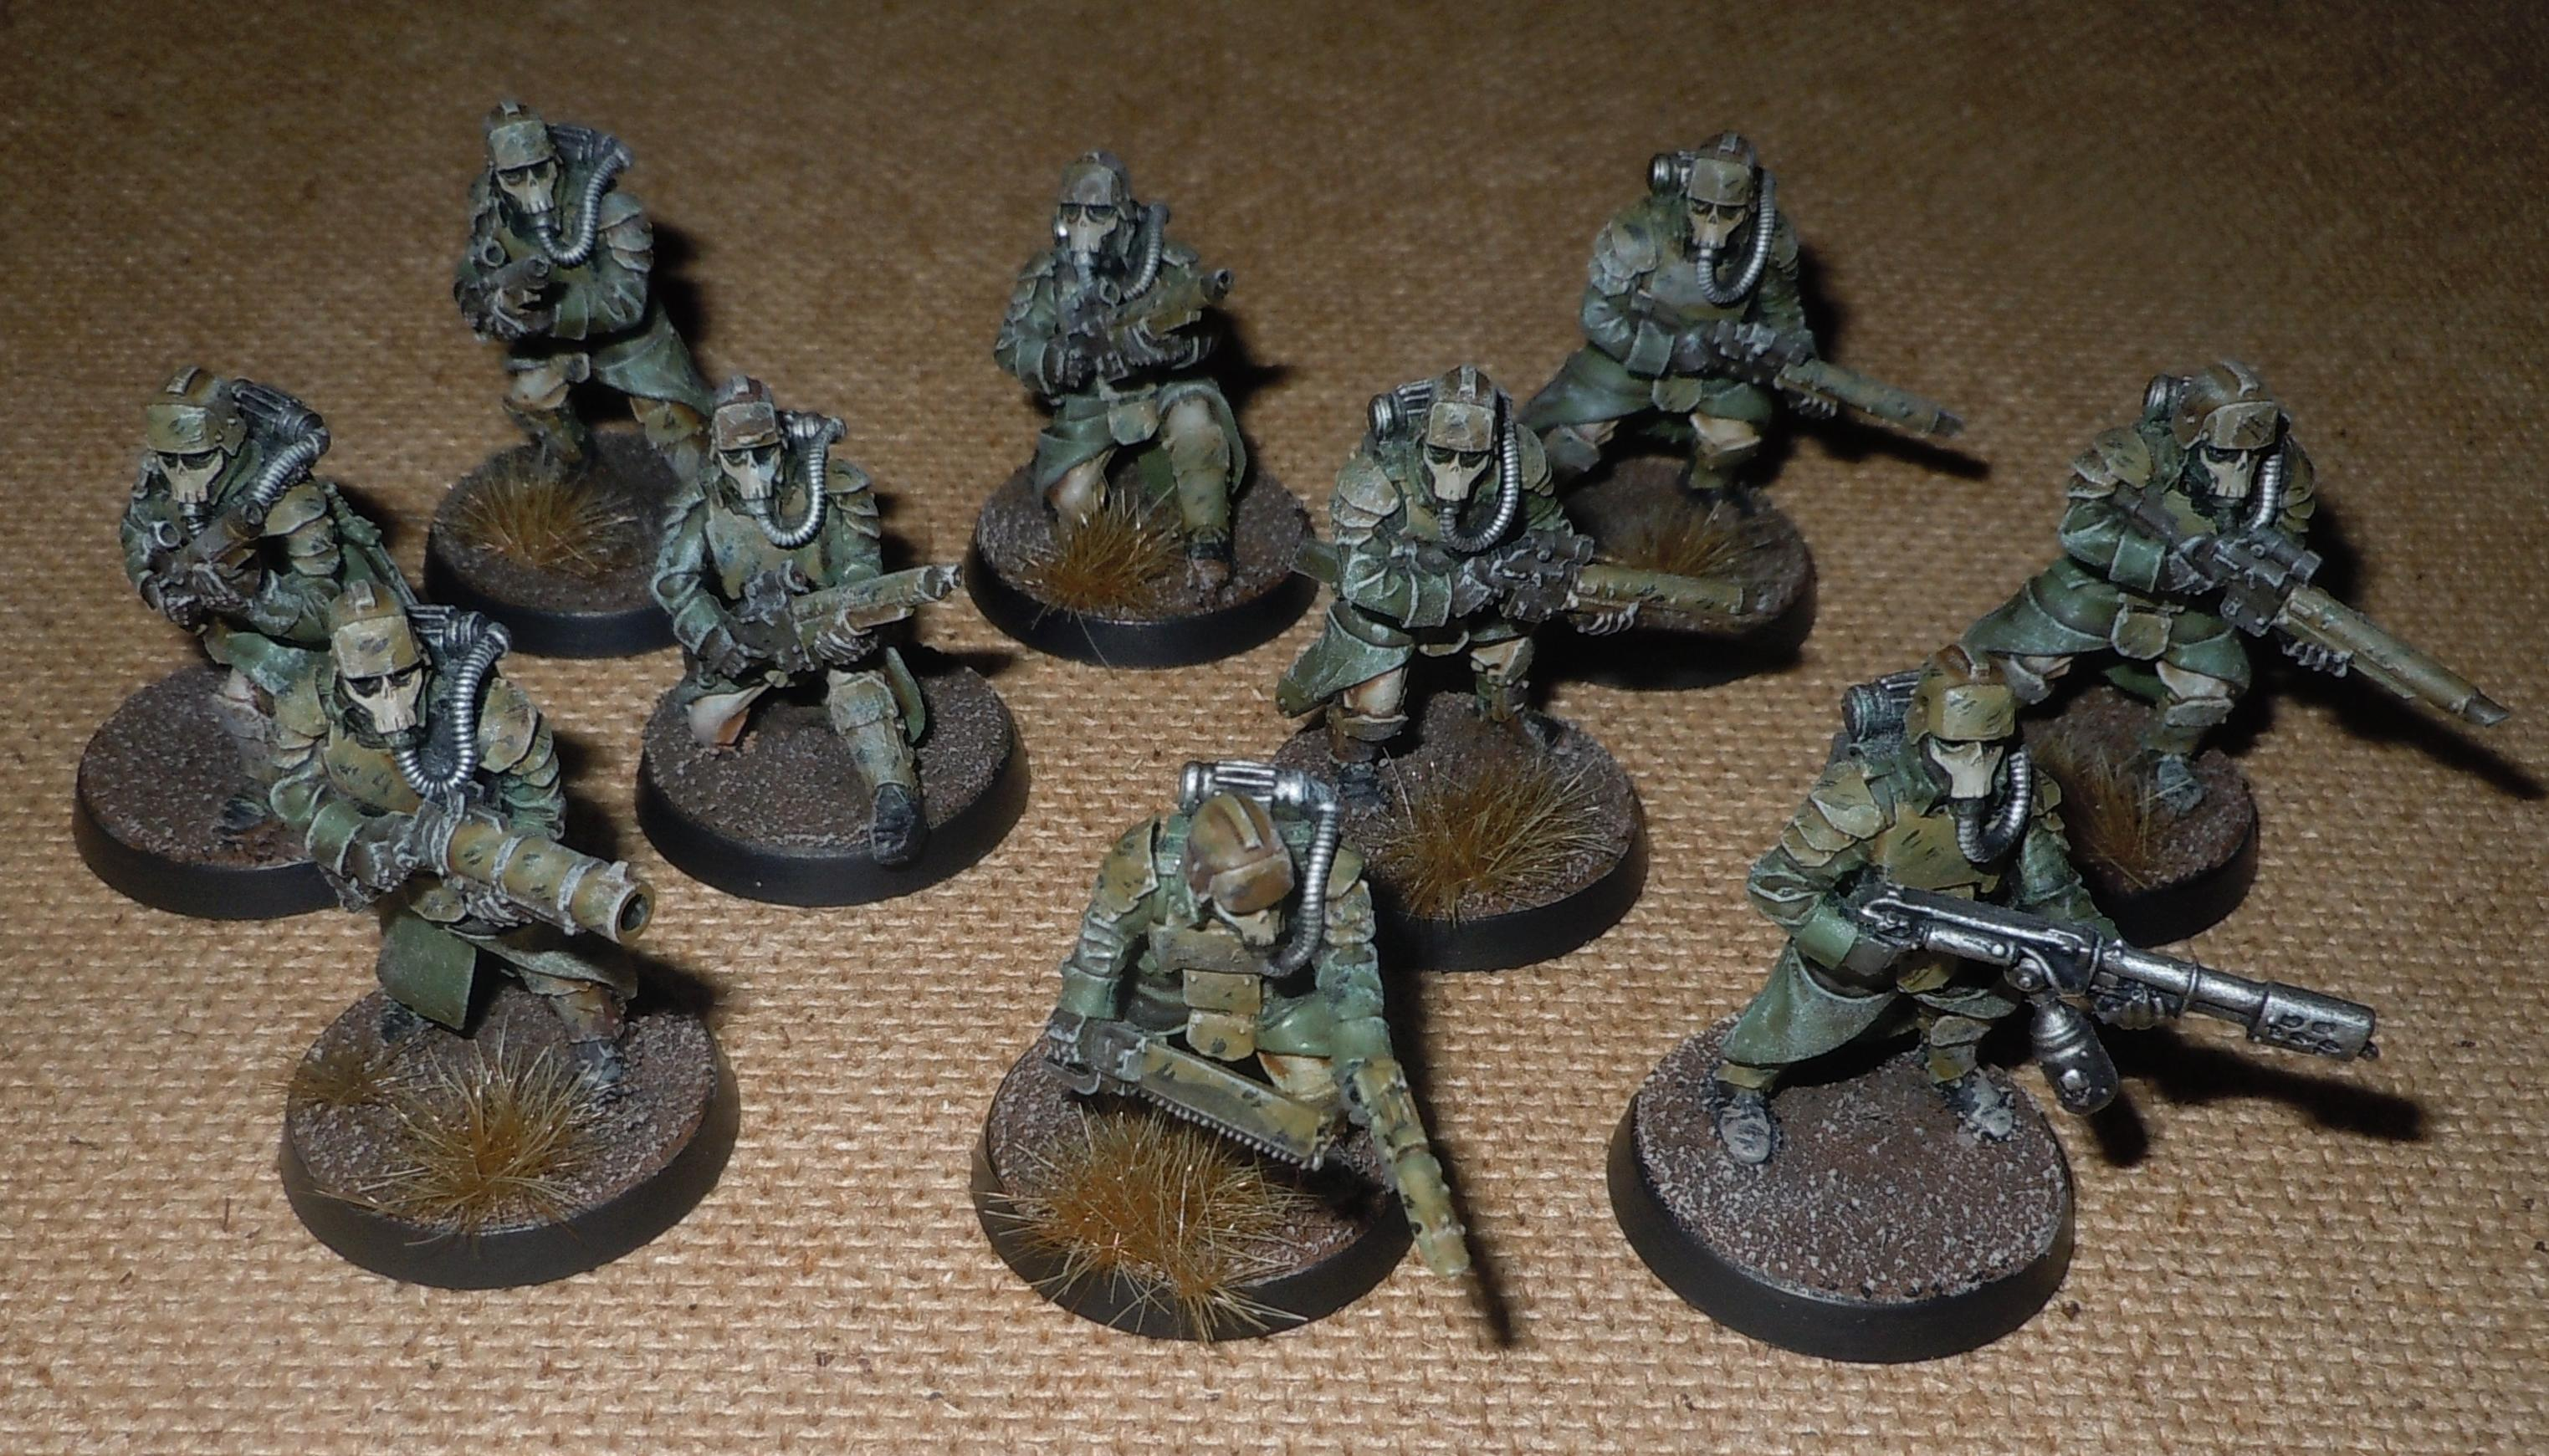 Death Korps Of Krieg  Flamer  Forge World  Grenade Launcher  Grenediers  Imperial Guard  Storm